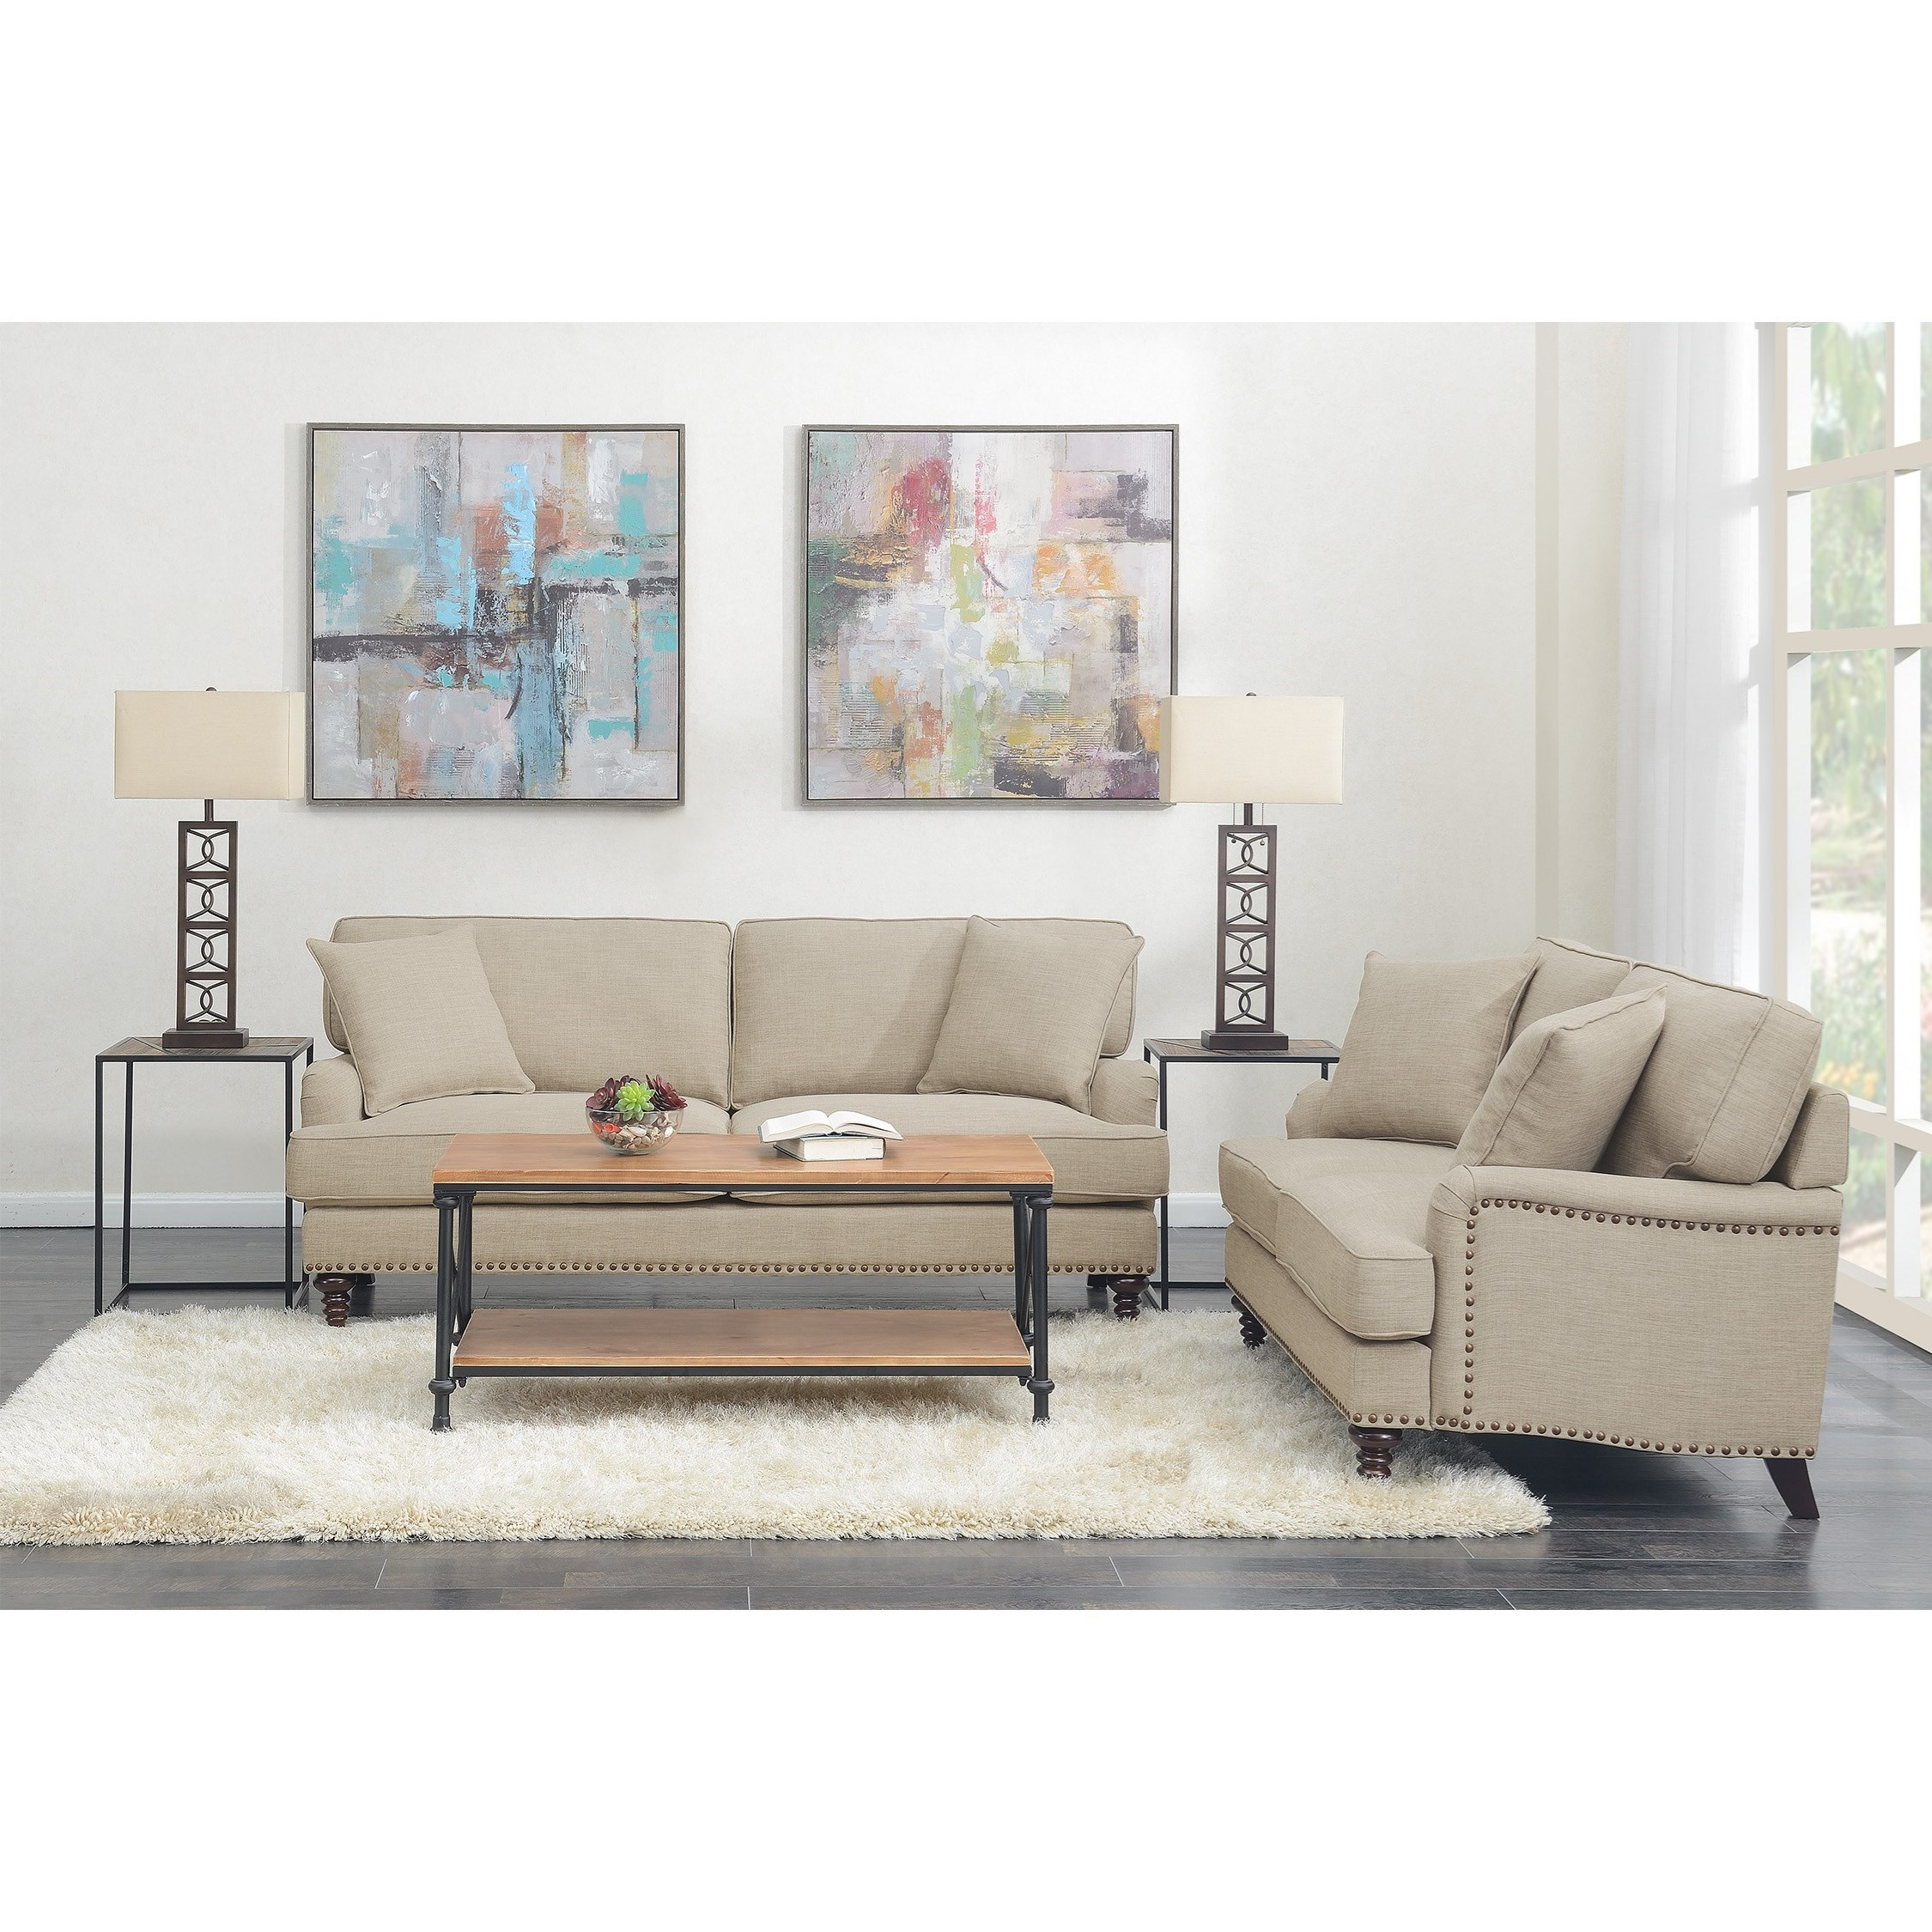 Abby 2PC Set-Sofa & Loveseat by Elements International at Wilcox Furniture